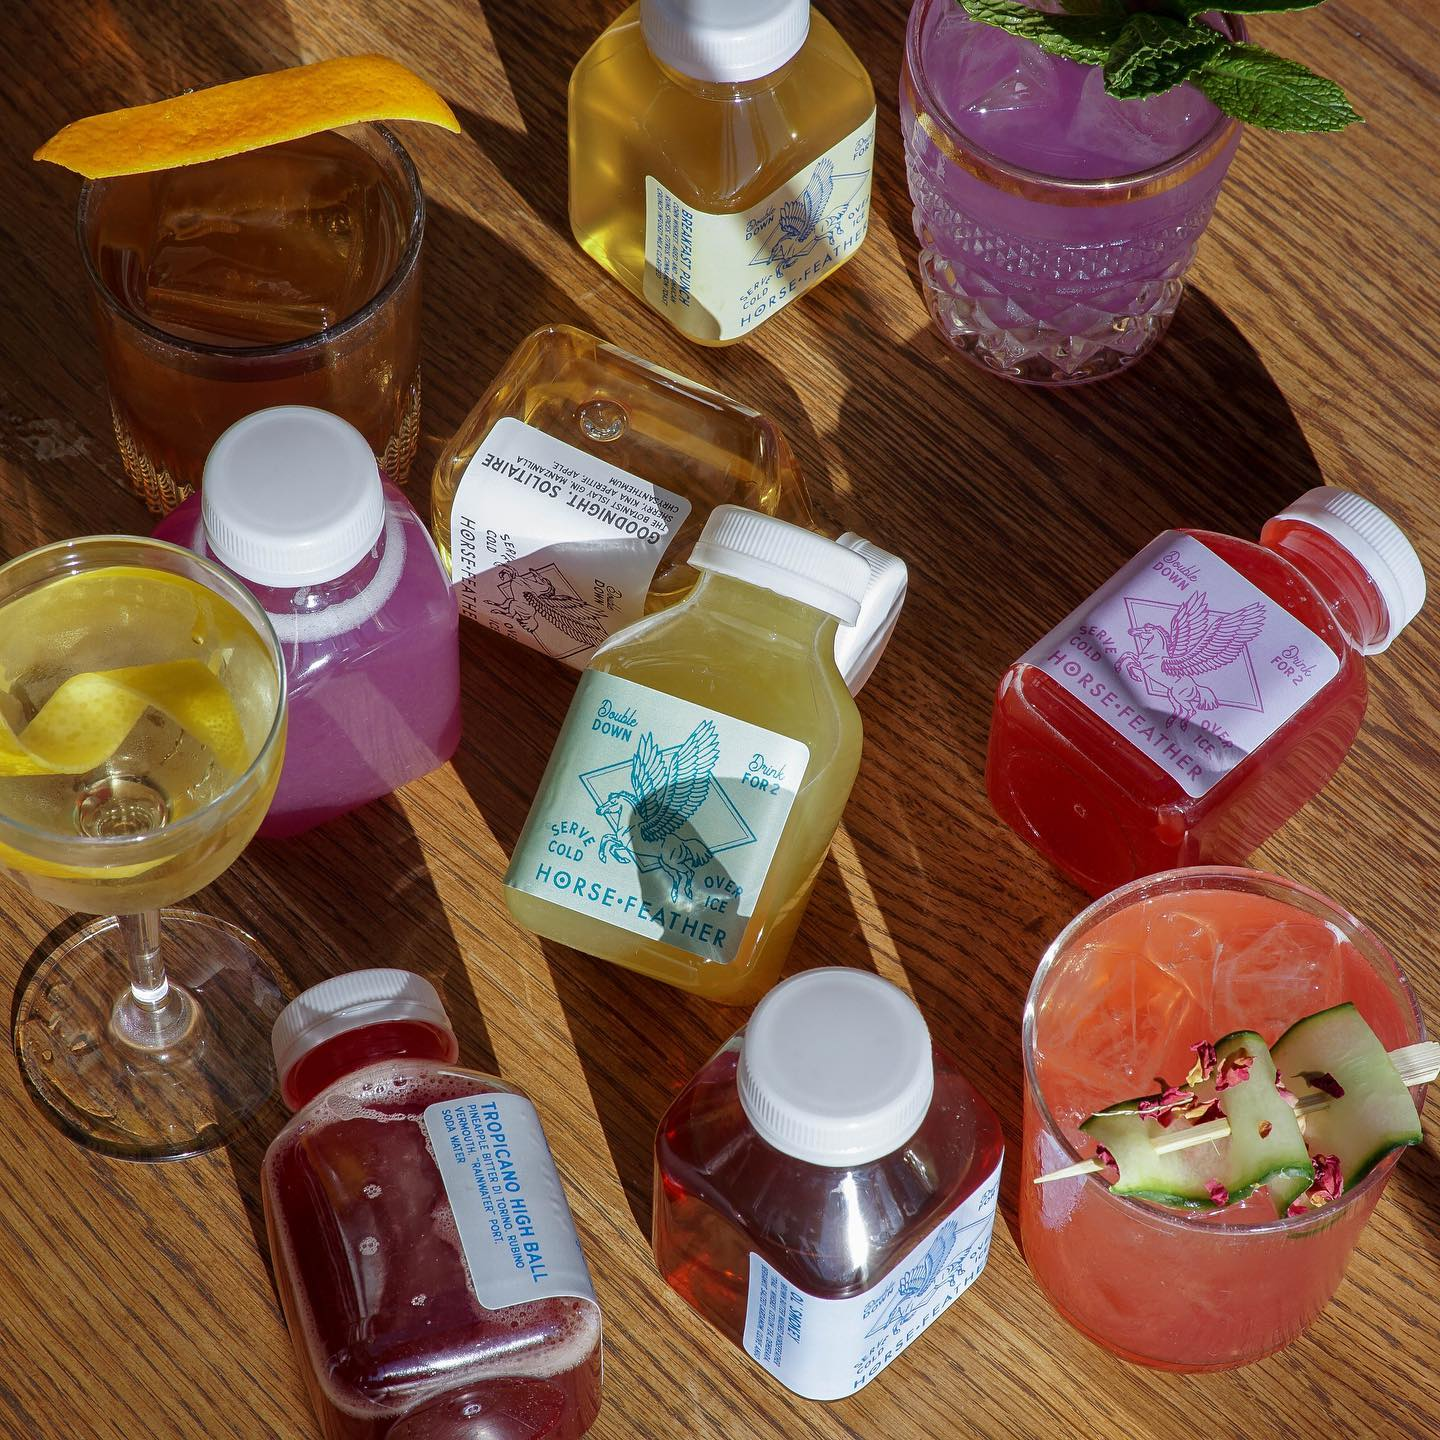 Bottled cocktails from Horsefeather